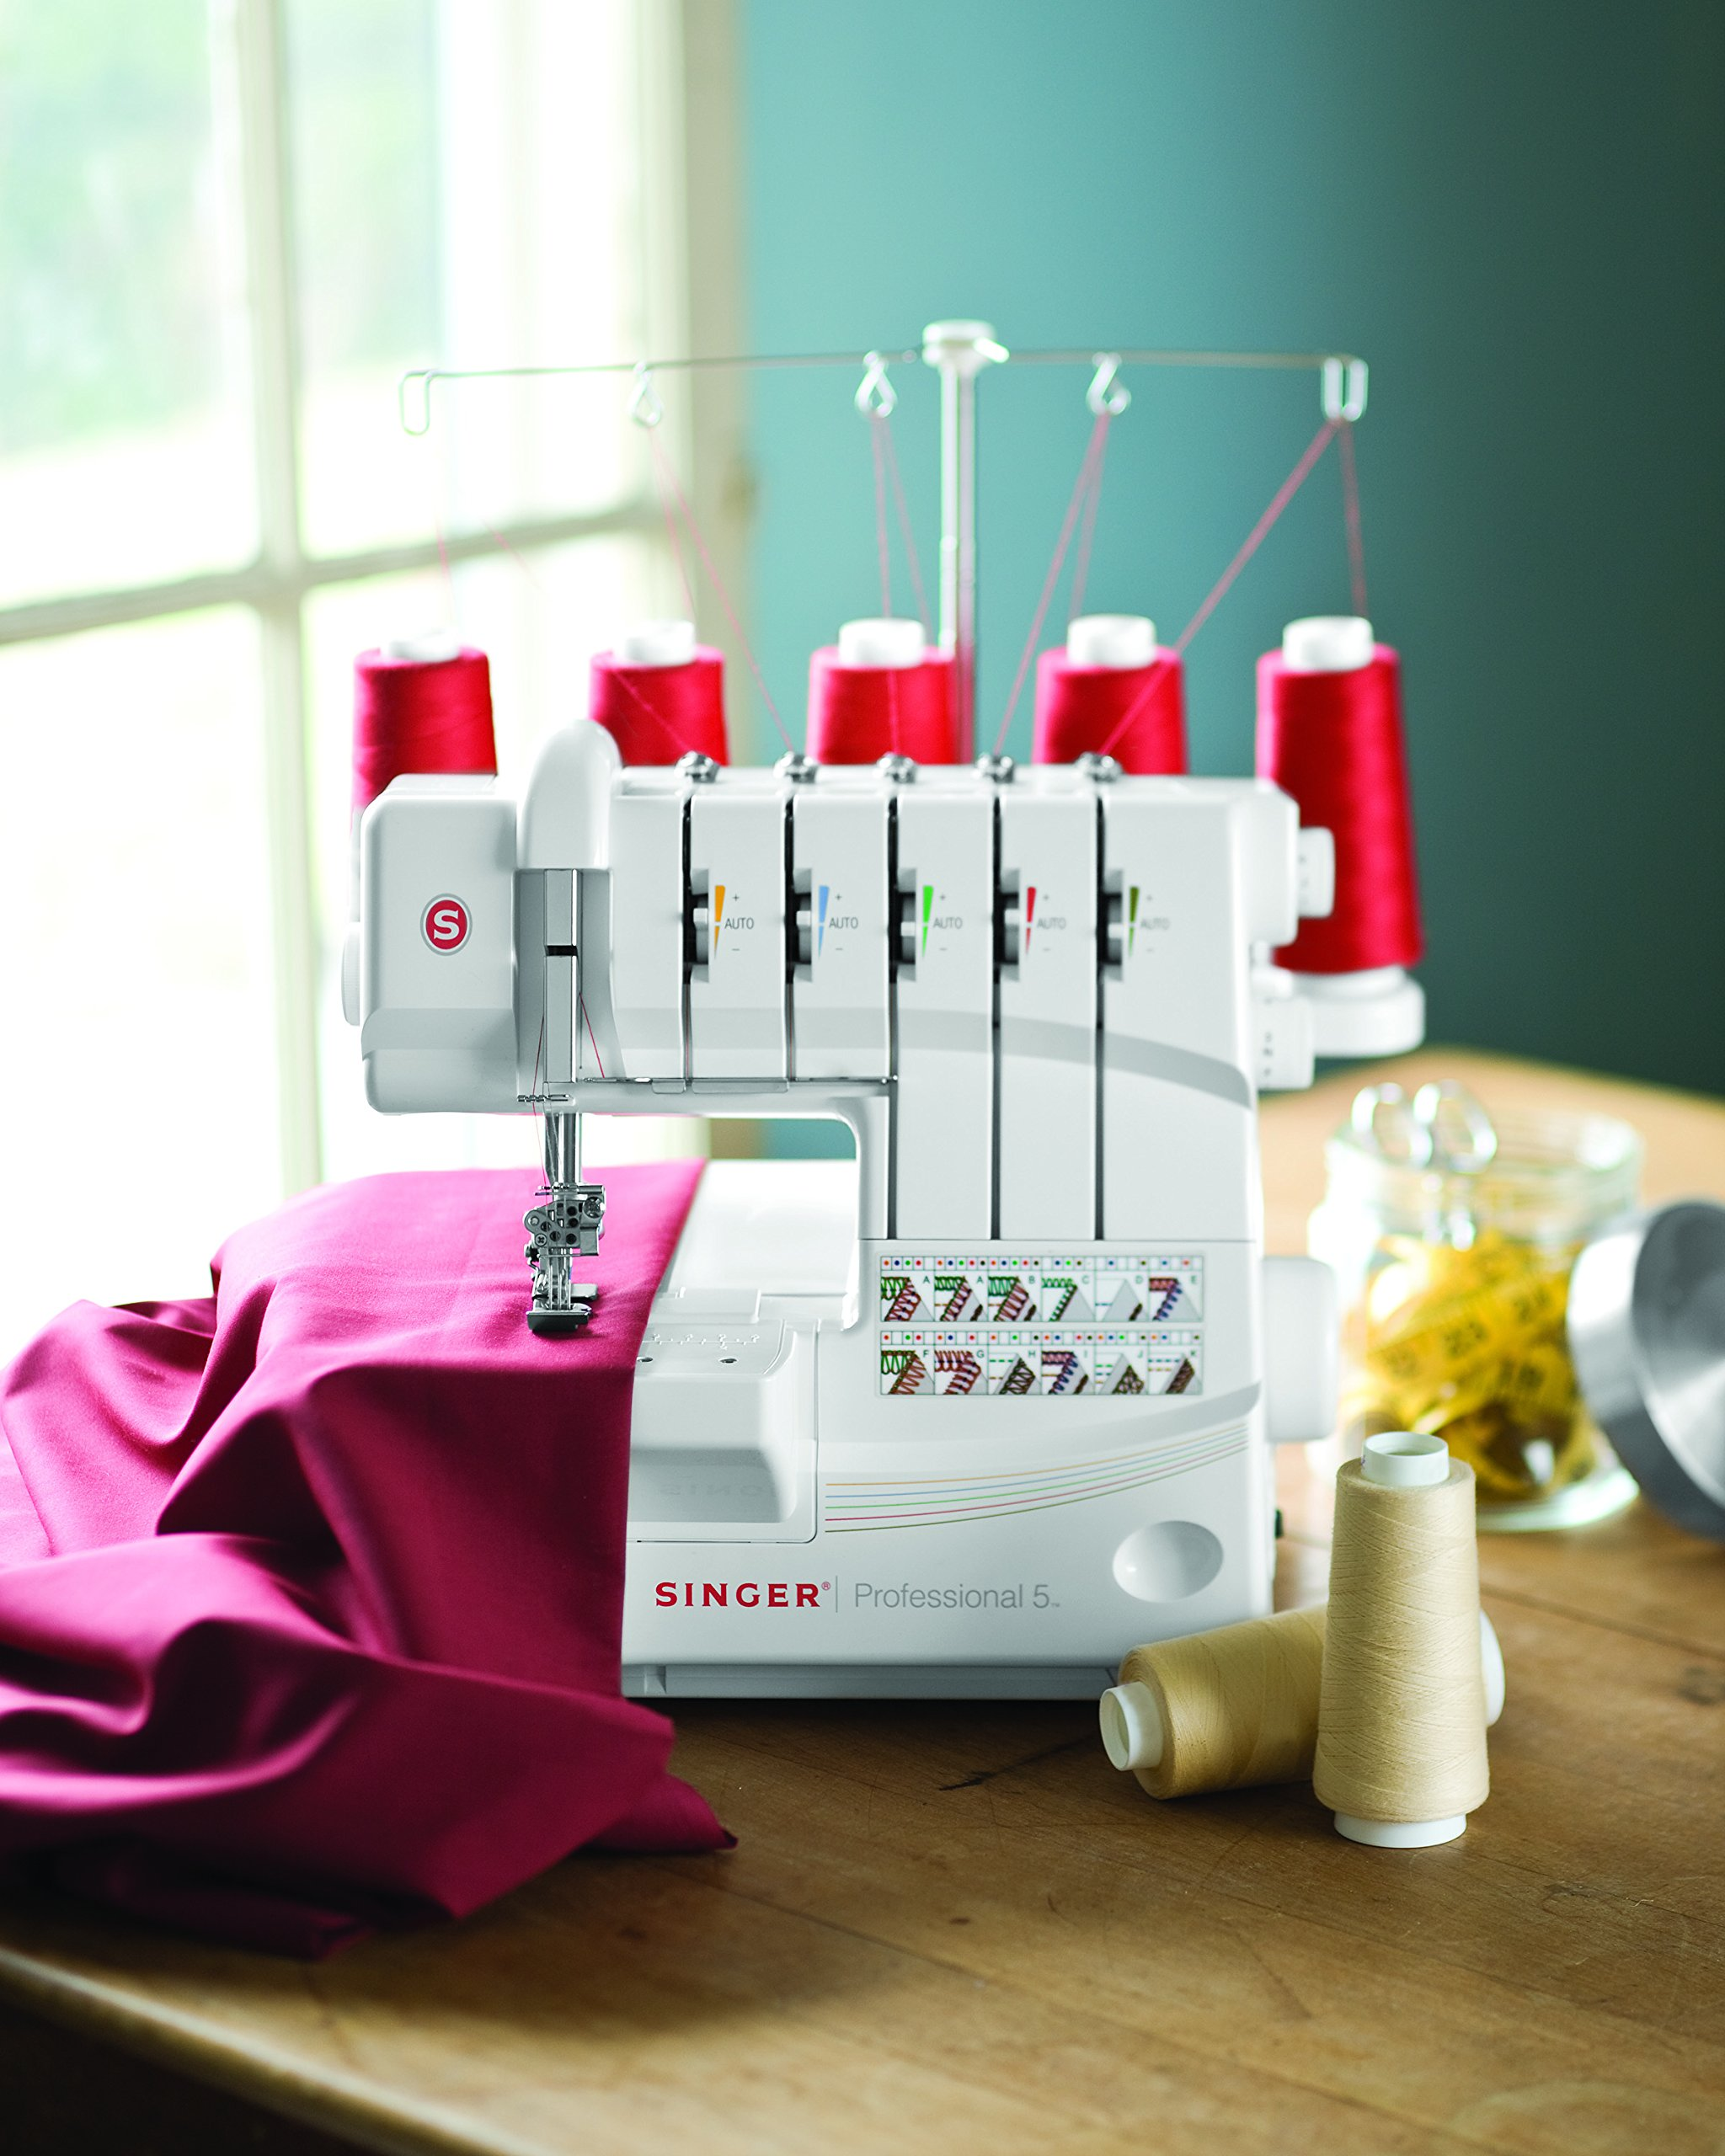 SINGER | Professional 5 14T968DC Serger with 2-3-4-5